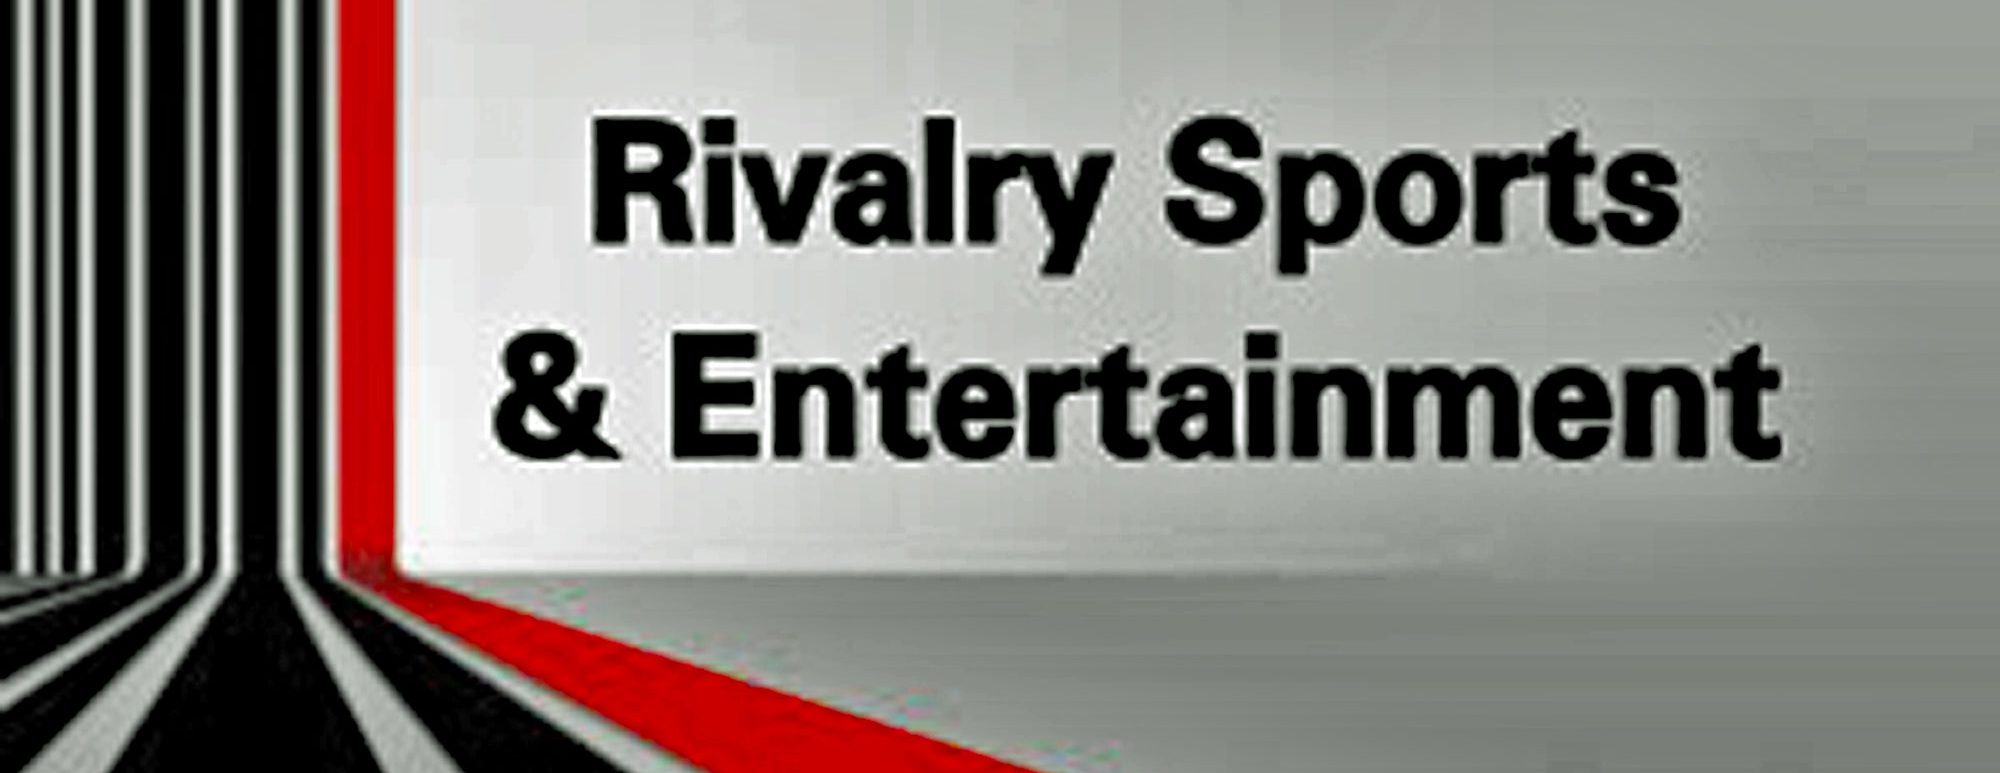 Rivalry Sports and Entertainment Network